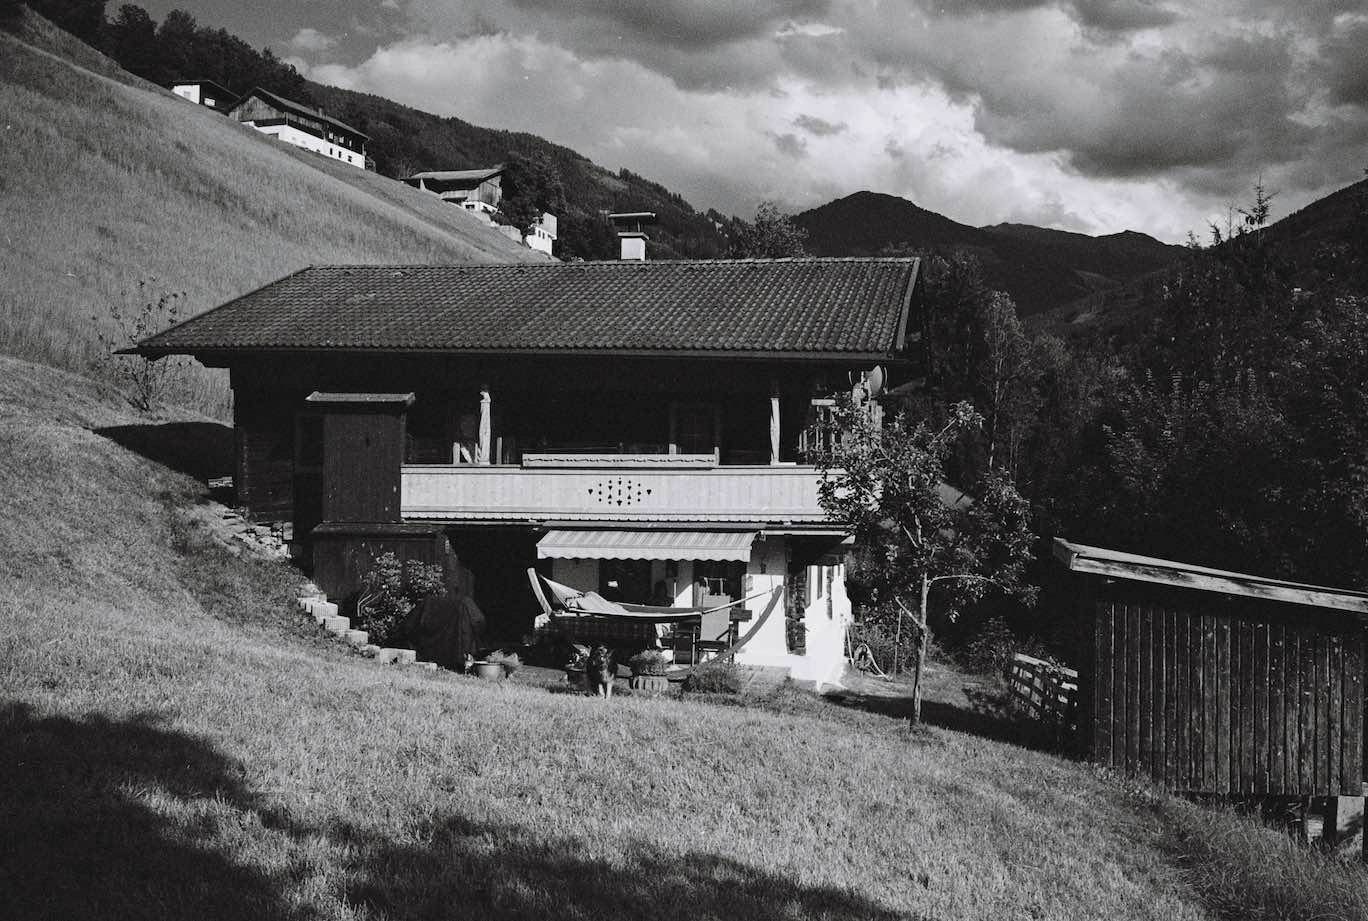 Mountain hut - Kodak Tri-X